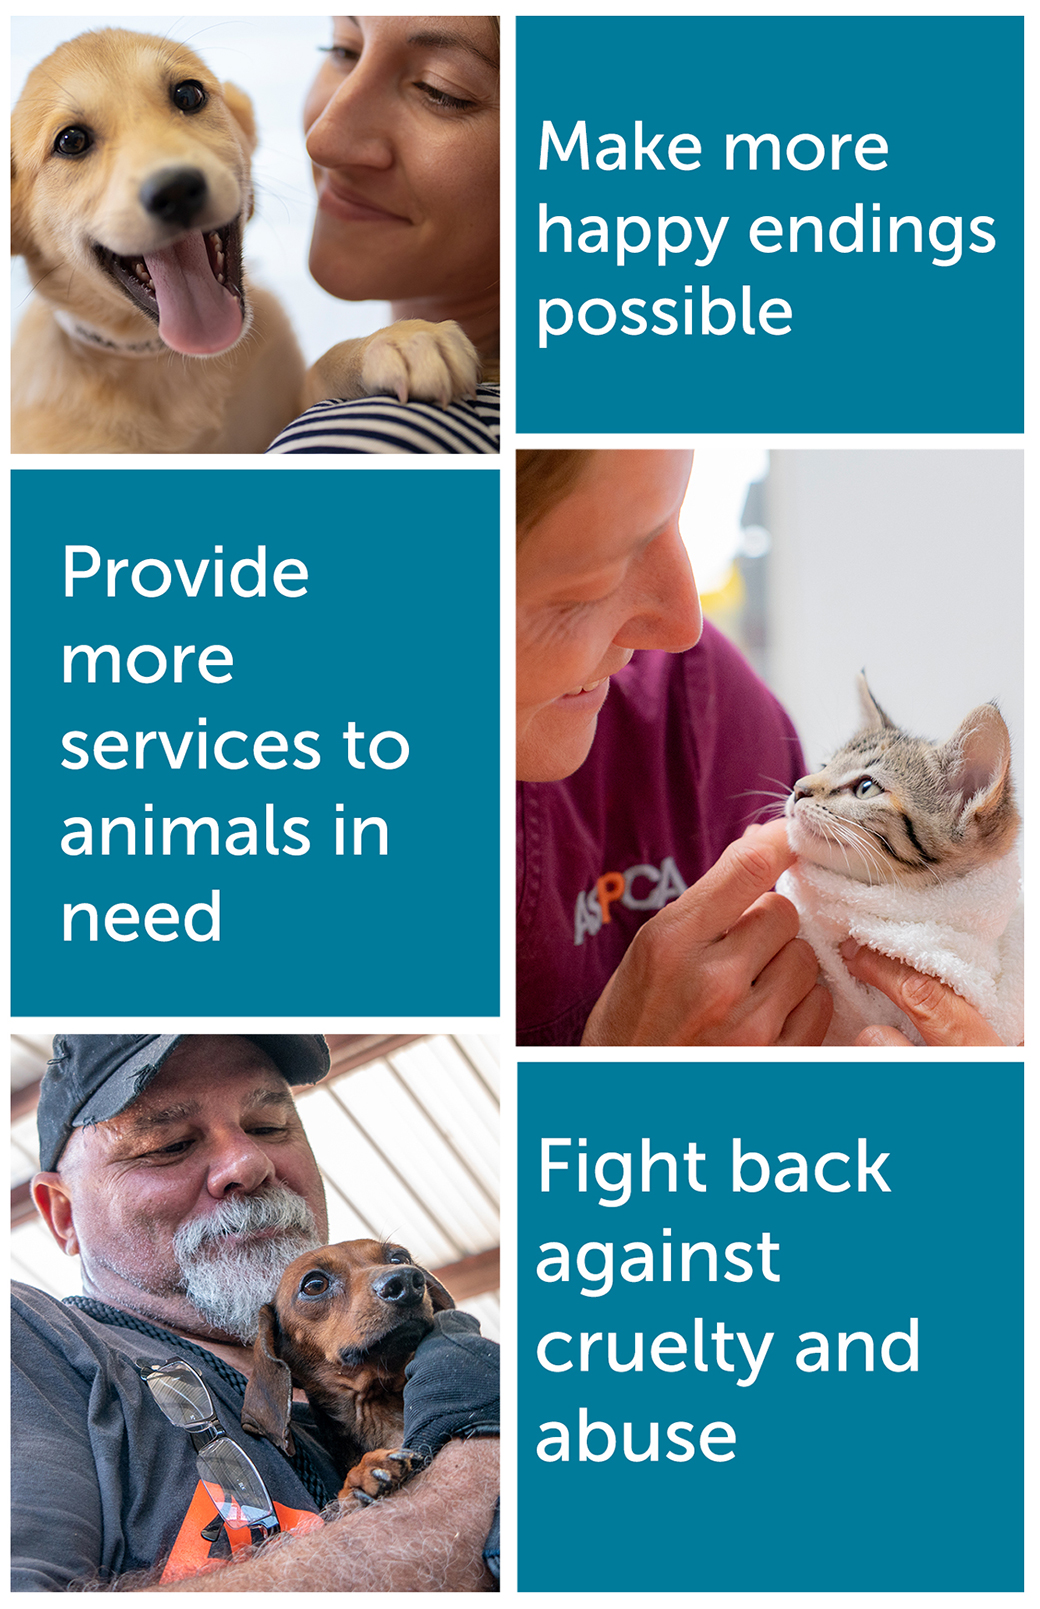 Thanks to the commitment of Subaru to animals, we're able to: